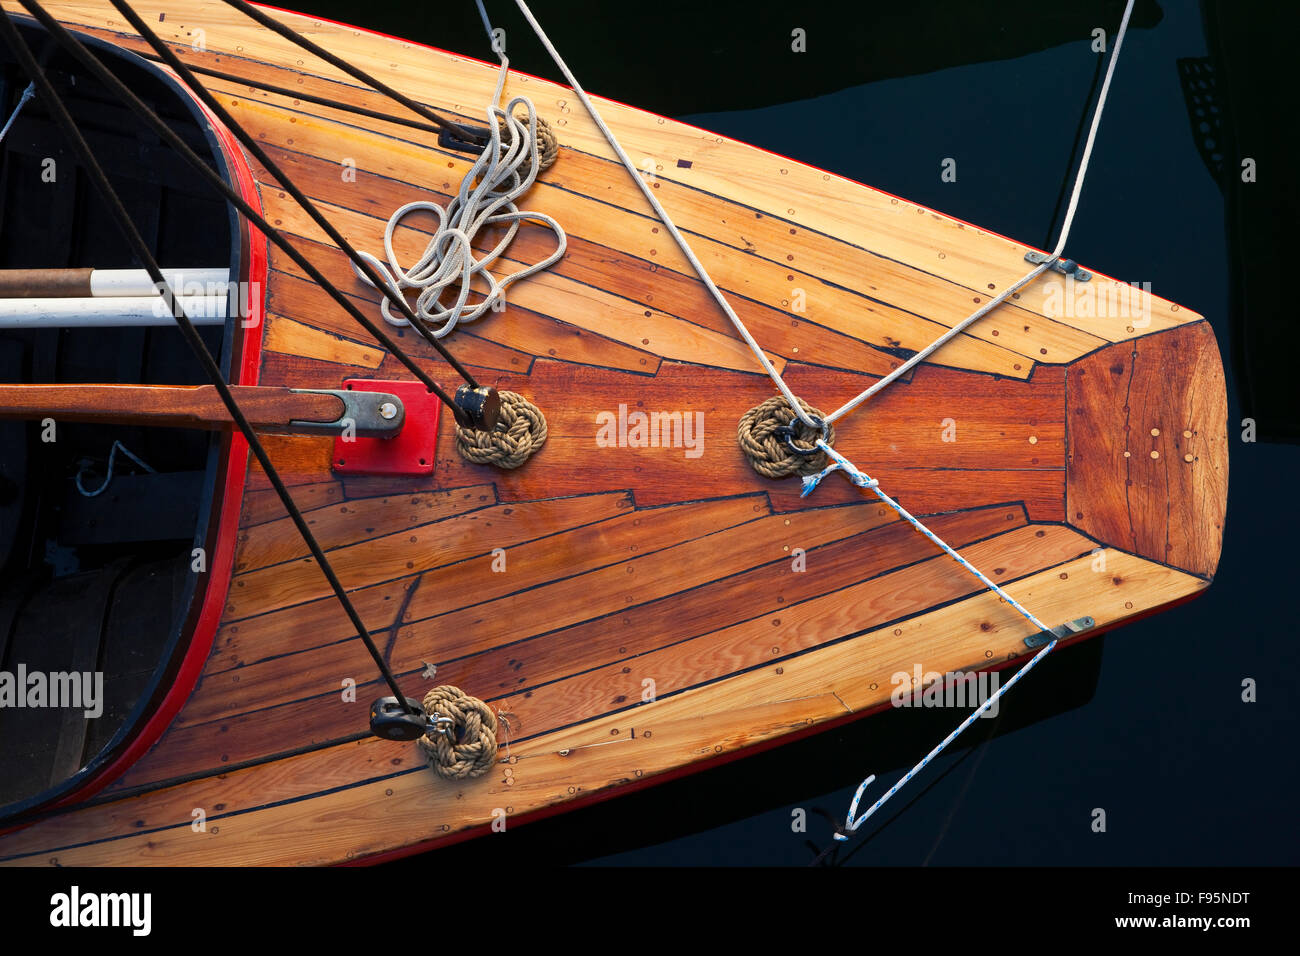 View from above of the bow of a small wooden sail boat. - Stock Image